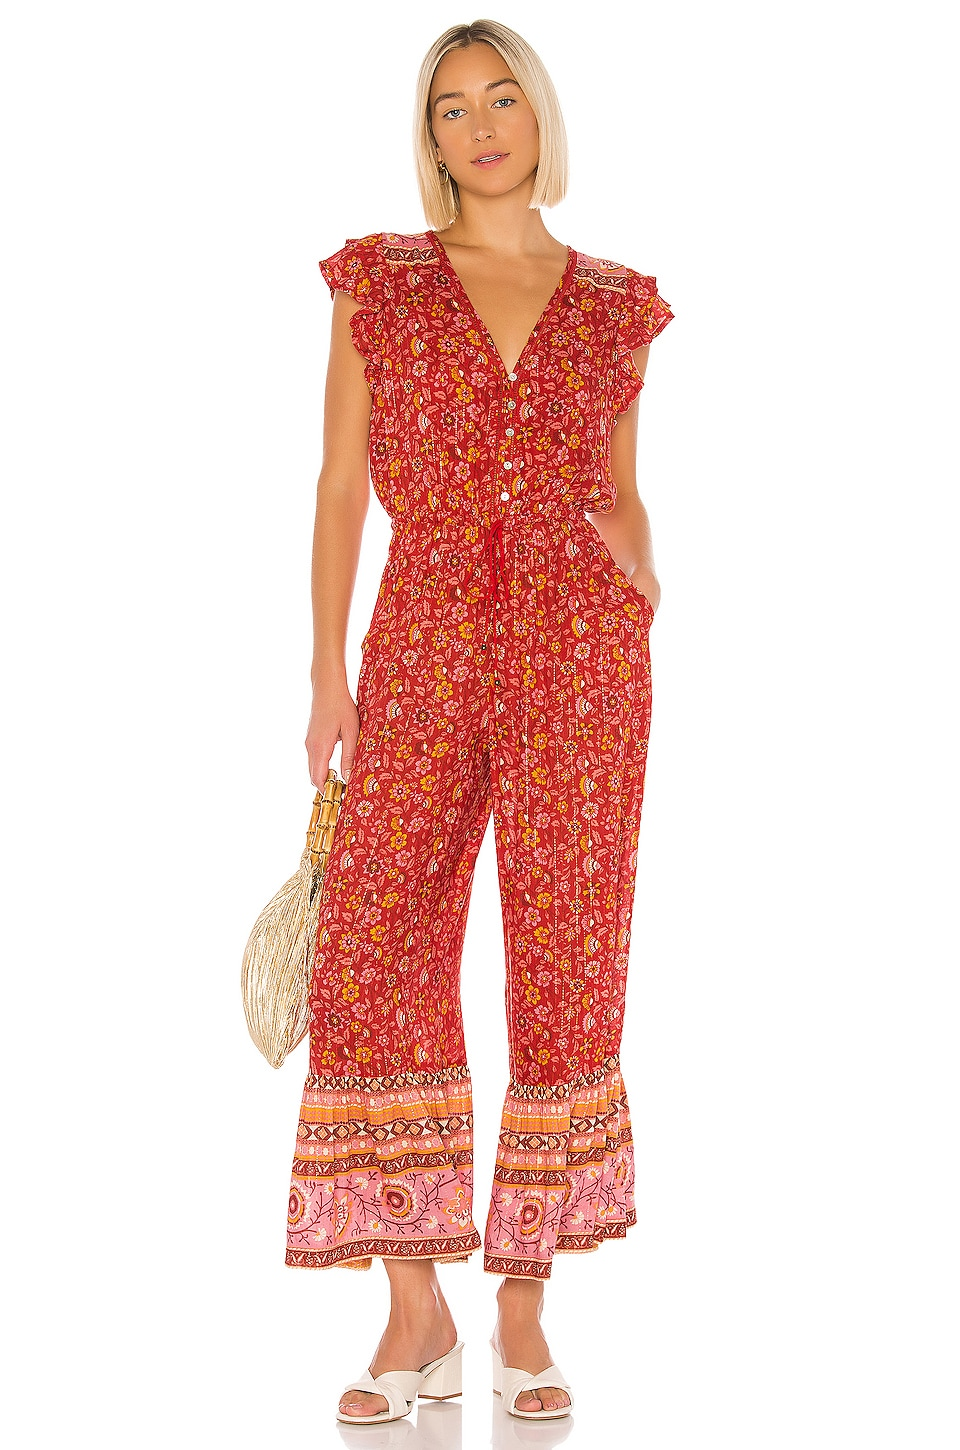 Spell & The Gypsy Collective X REVOLVE Dahlia Jumpsuit in Red